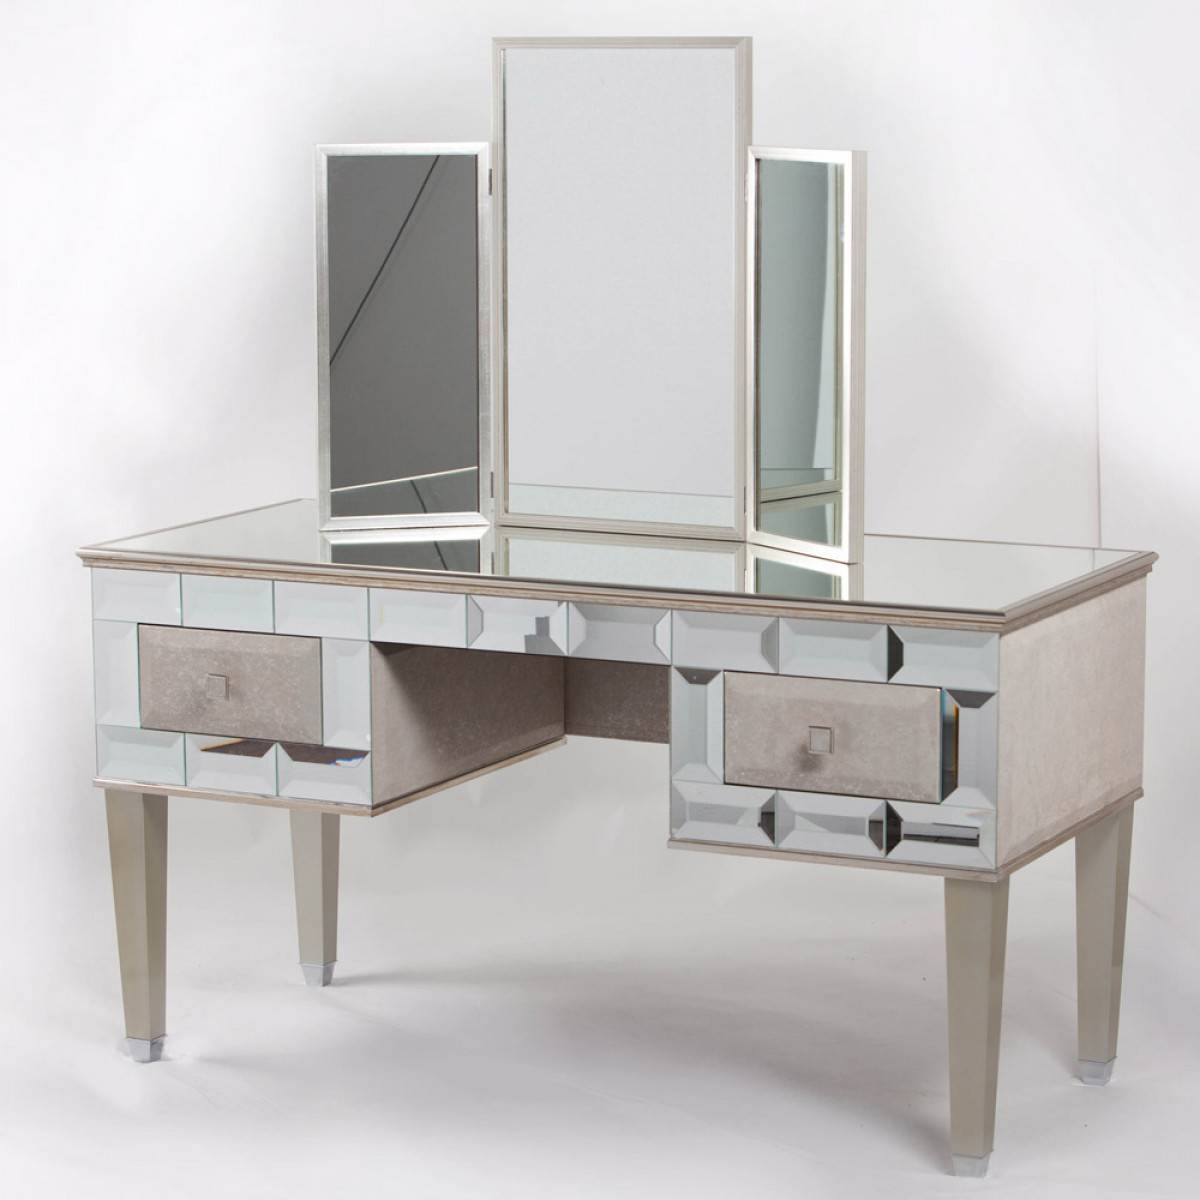 Mirrored Vanity Table Furniture Sydney : Mirrored Vanity Desk with regard to Contemporary Dressing Table Mirrors (Image 22 of 25)